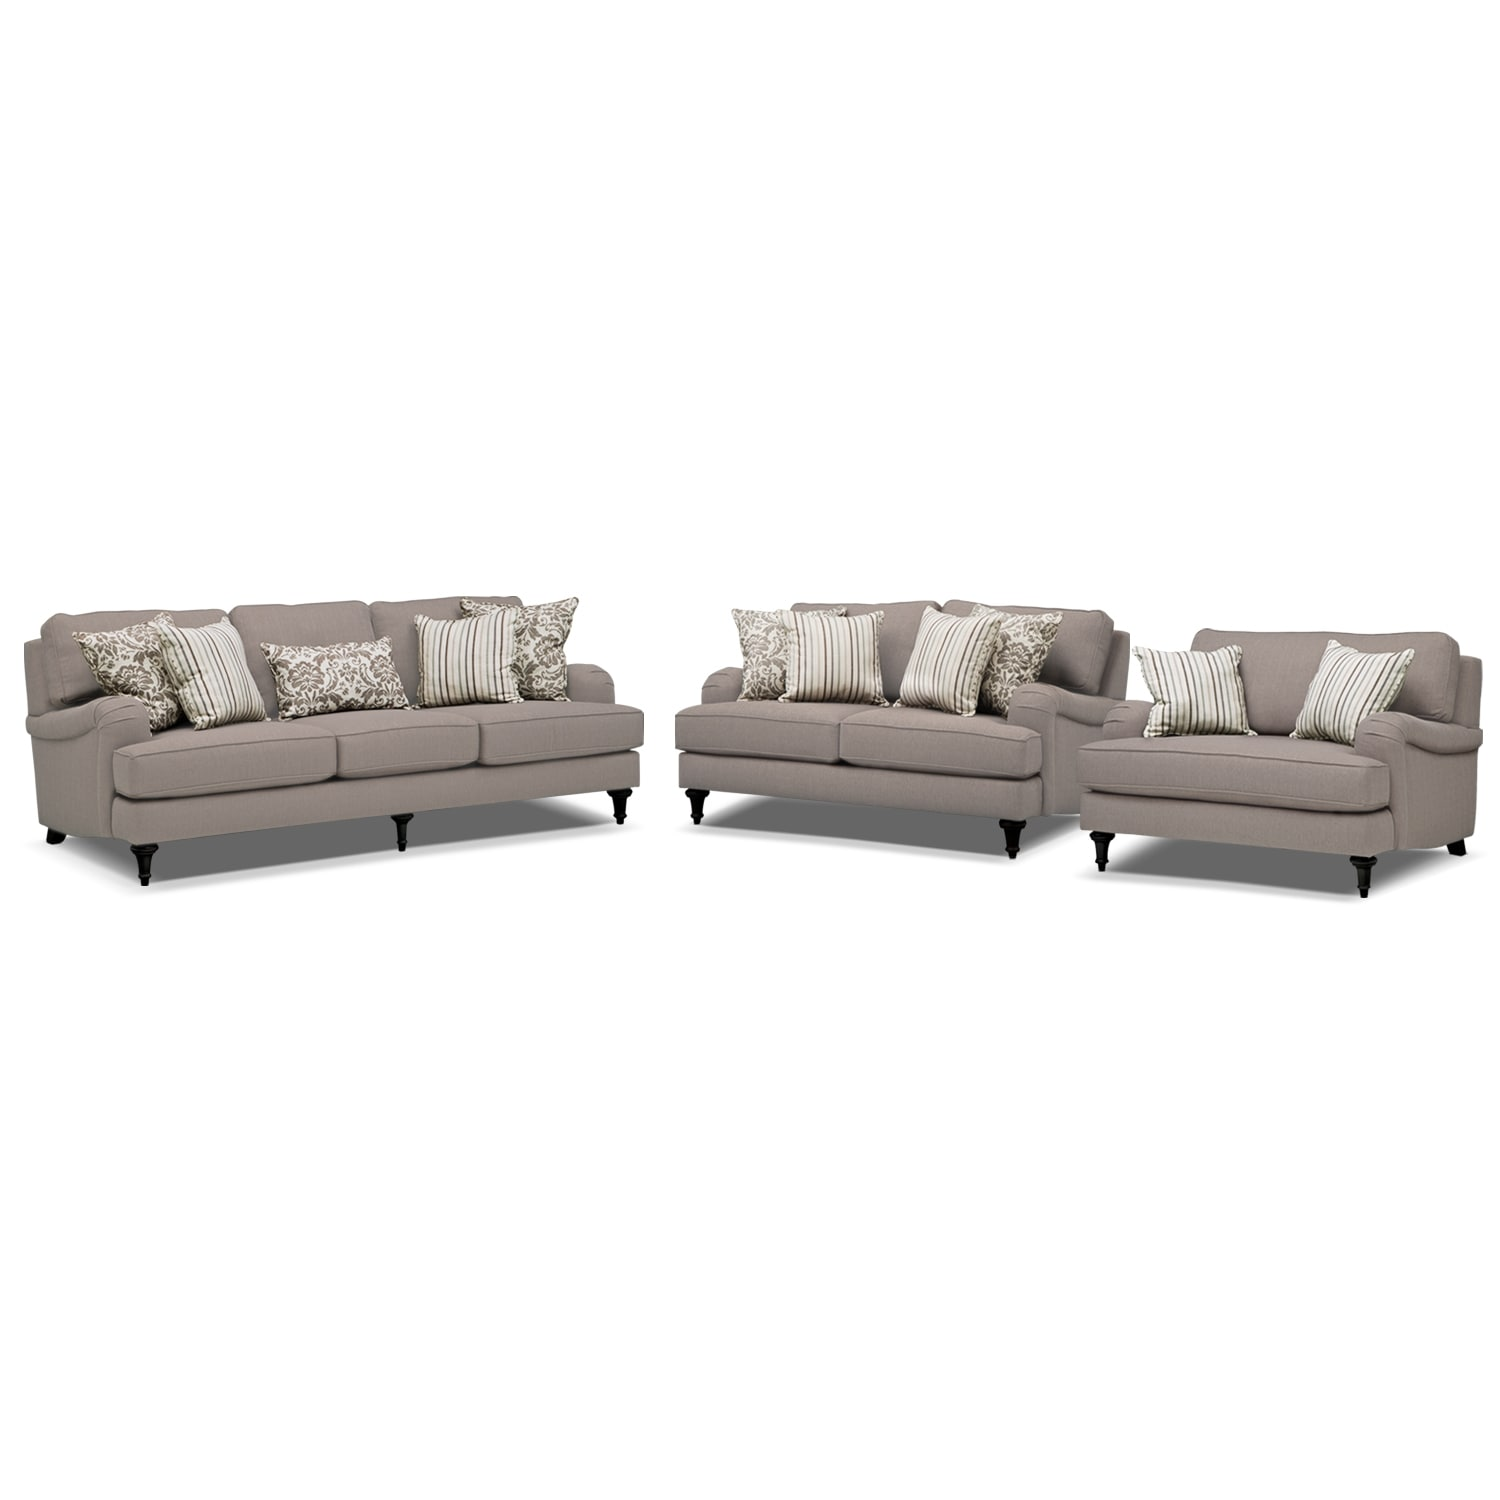 Living Room Furniture - Candice Sofa Loveseat and Chair and a Half Set - Gray  sc 1 st  Value City Furniture & Candice Sofa Loveseat and Chair and a Half Set - Gray | Value City ...